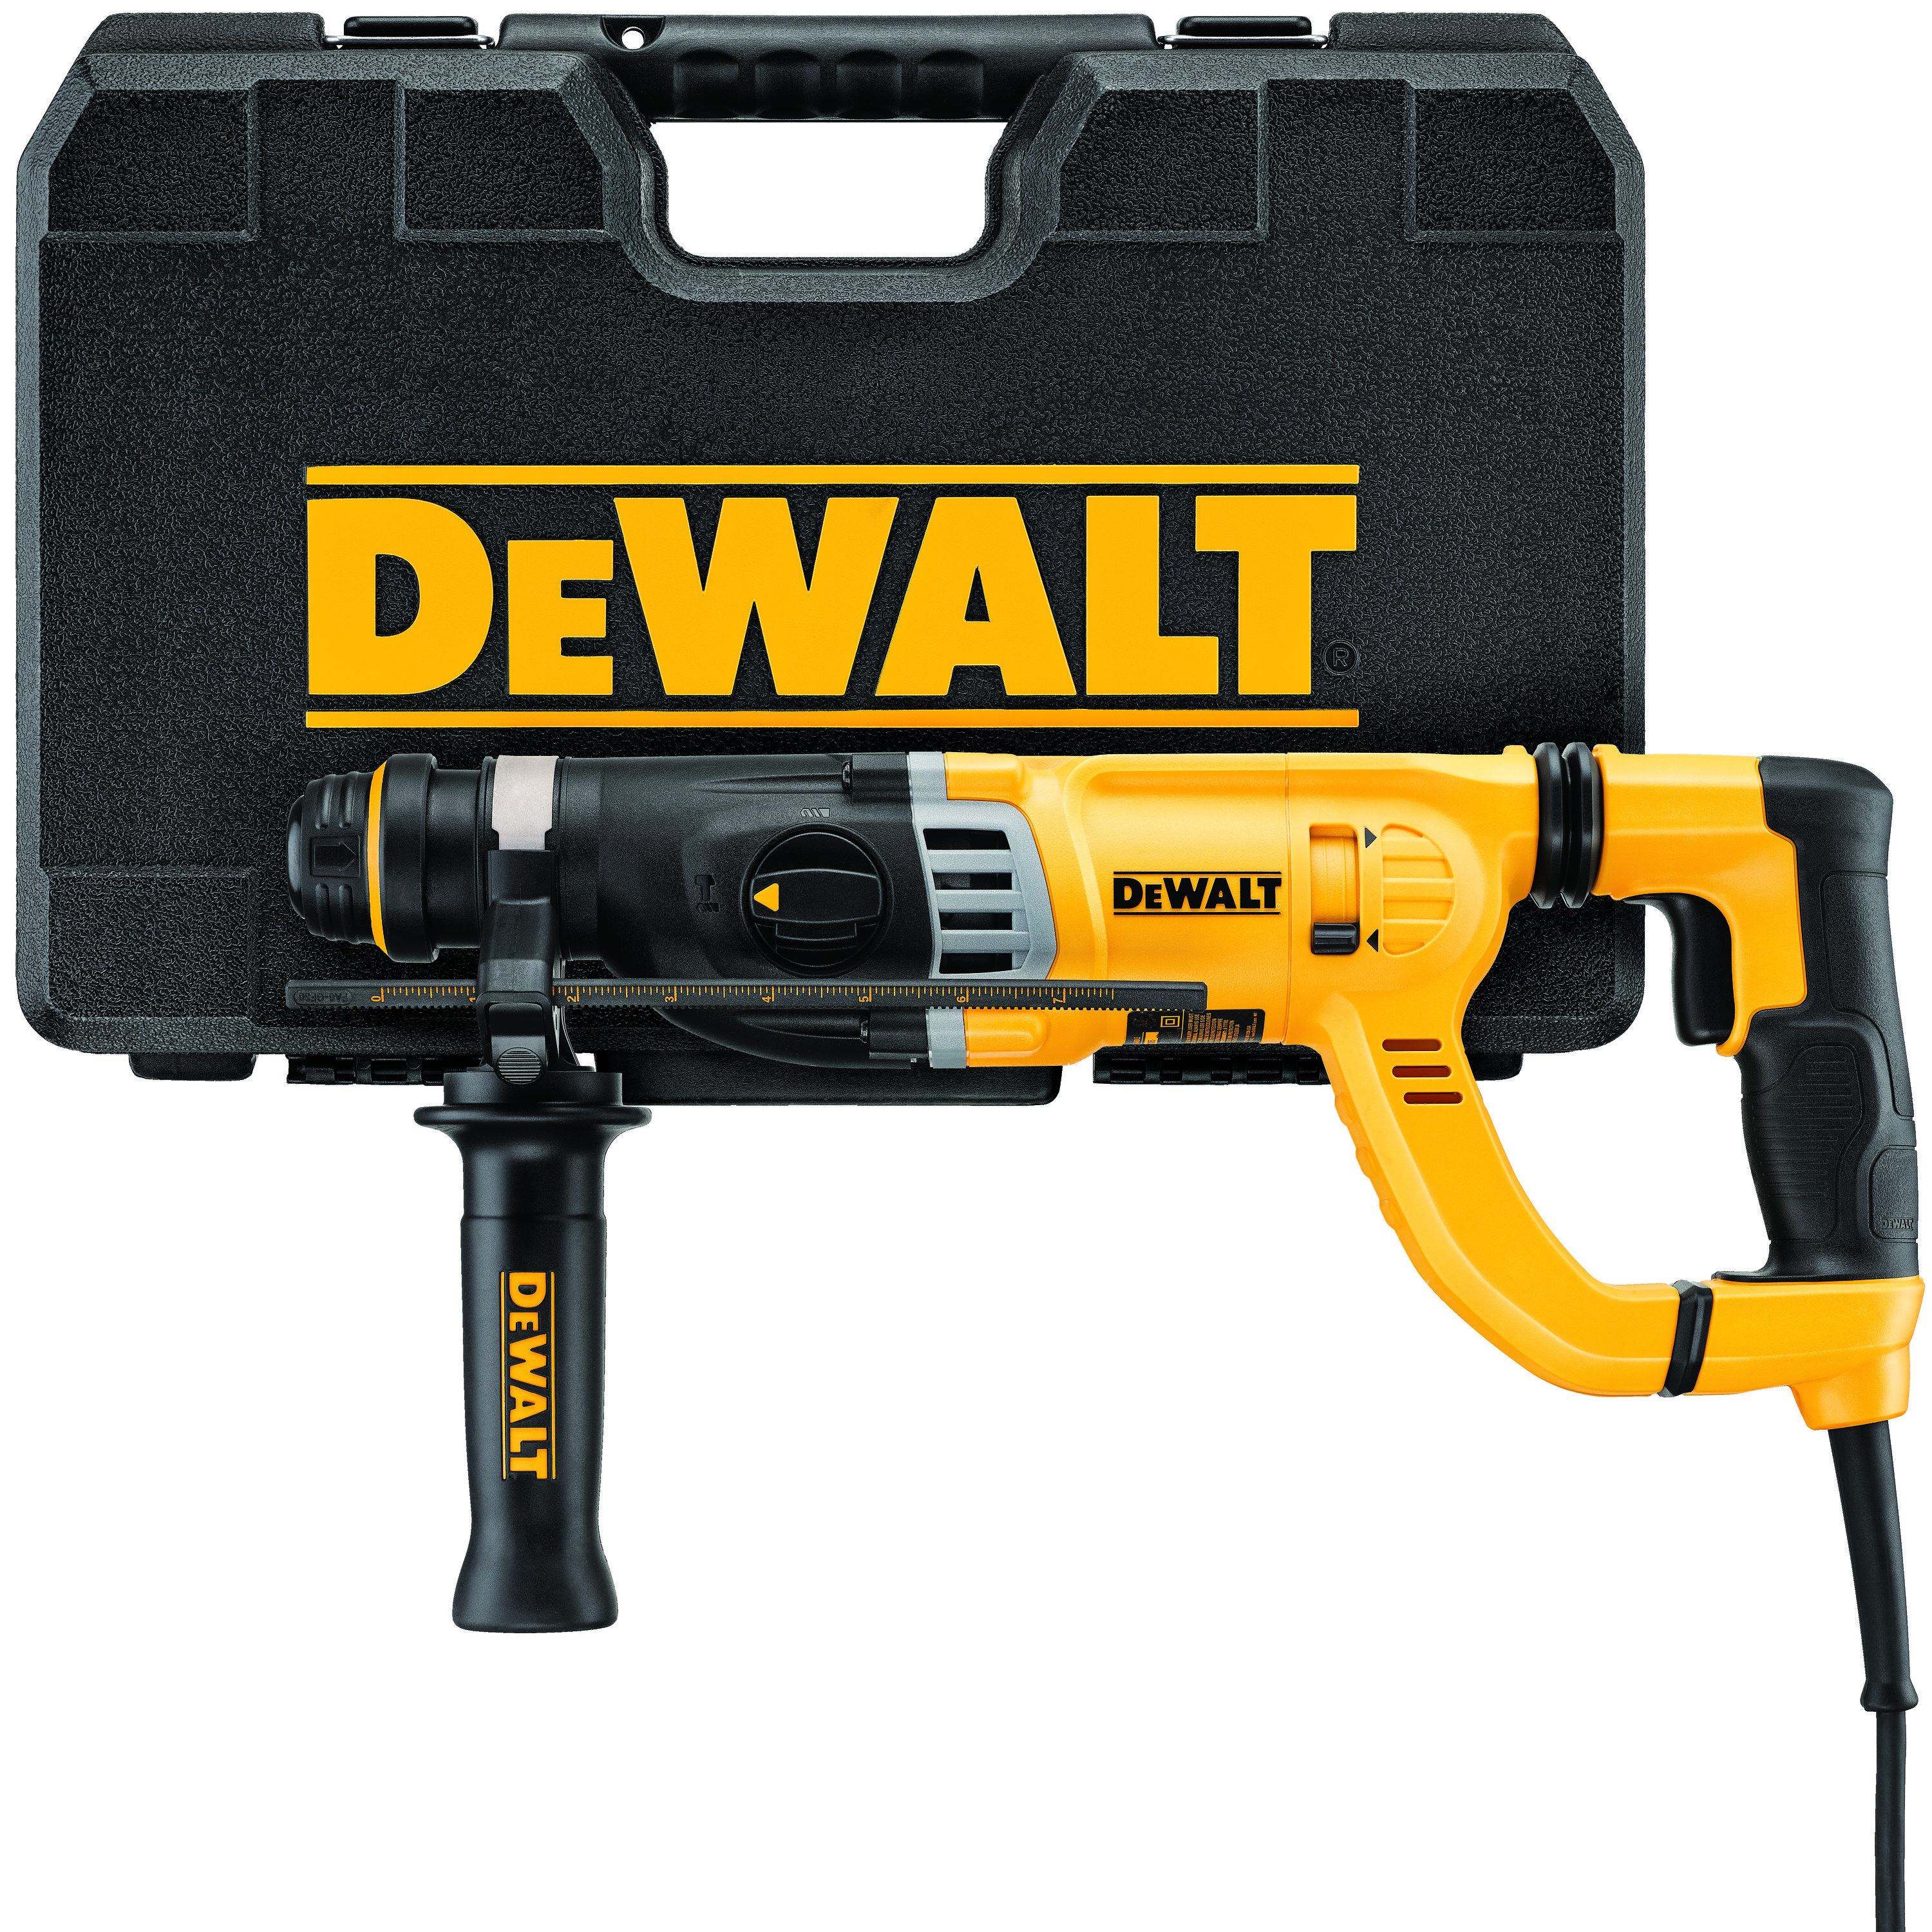 DeWALT® D25263K Corded Rotary Hammer Kit, 1-1/8 in SDS Plus® Chuck, 0 to 5350 bpm, 0 to 1450 rpm No-Load, 17-1/2 in OAL